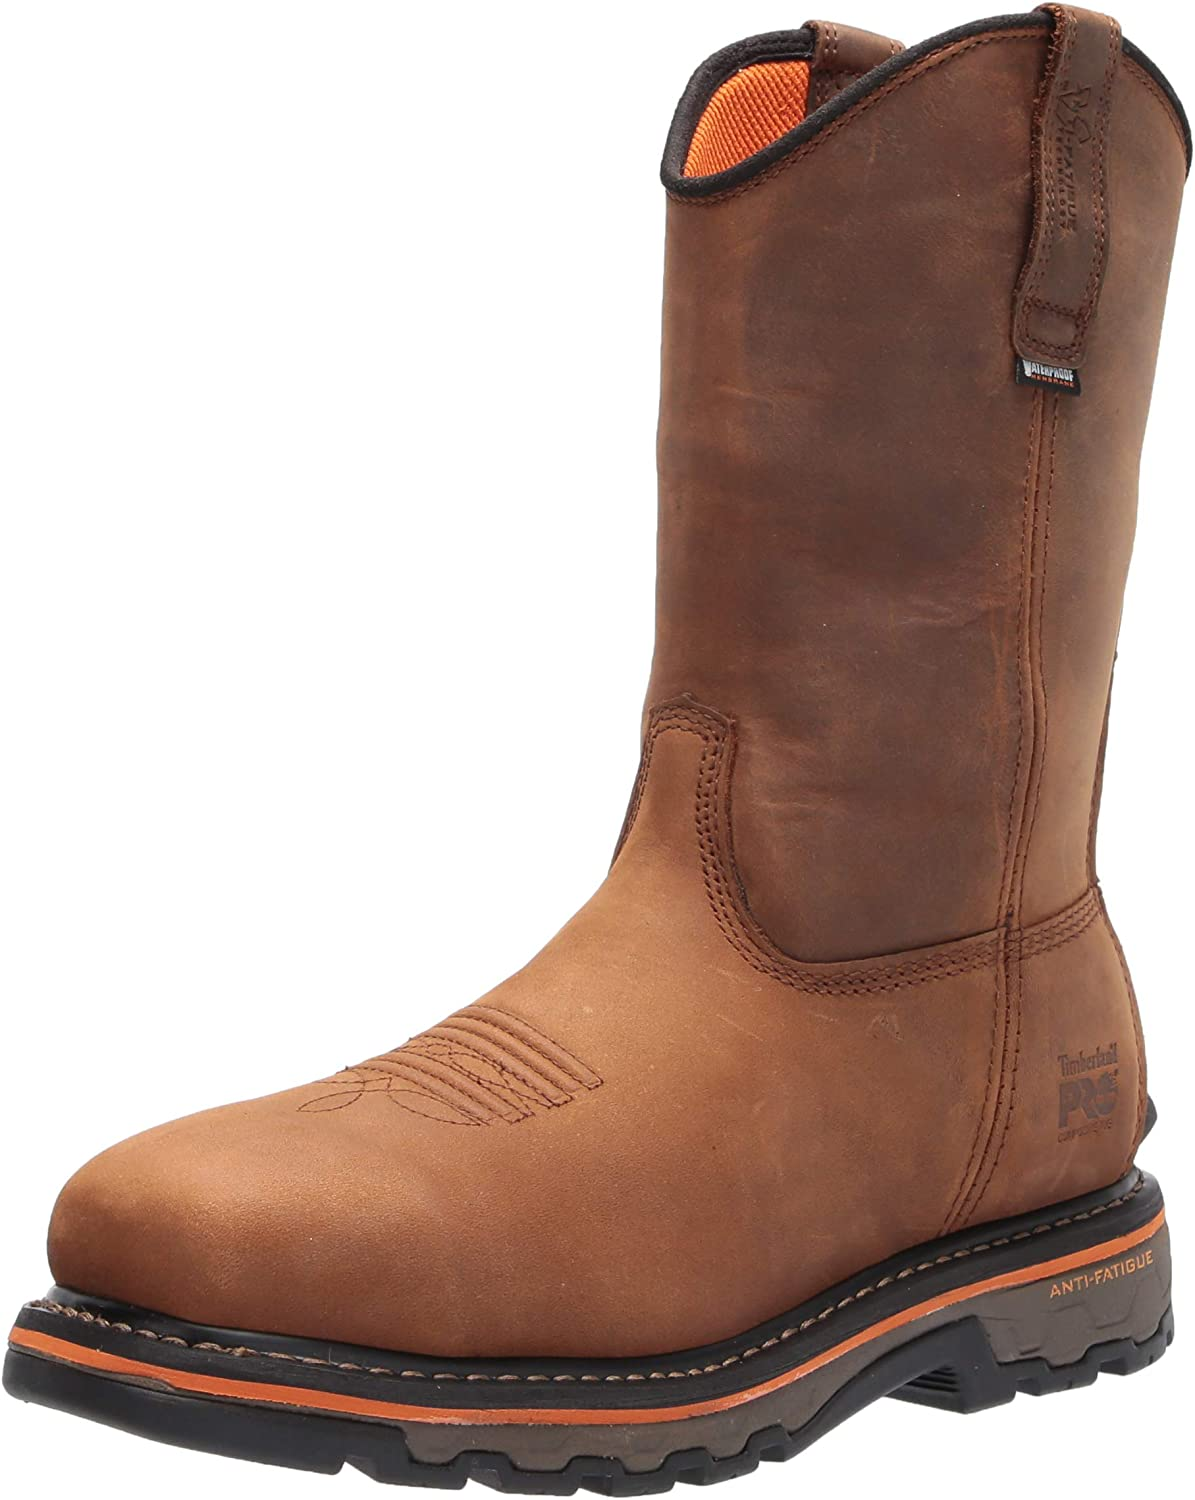 Timberland PRO Men's Pull-on Work Boots shopping Industrial 2021